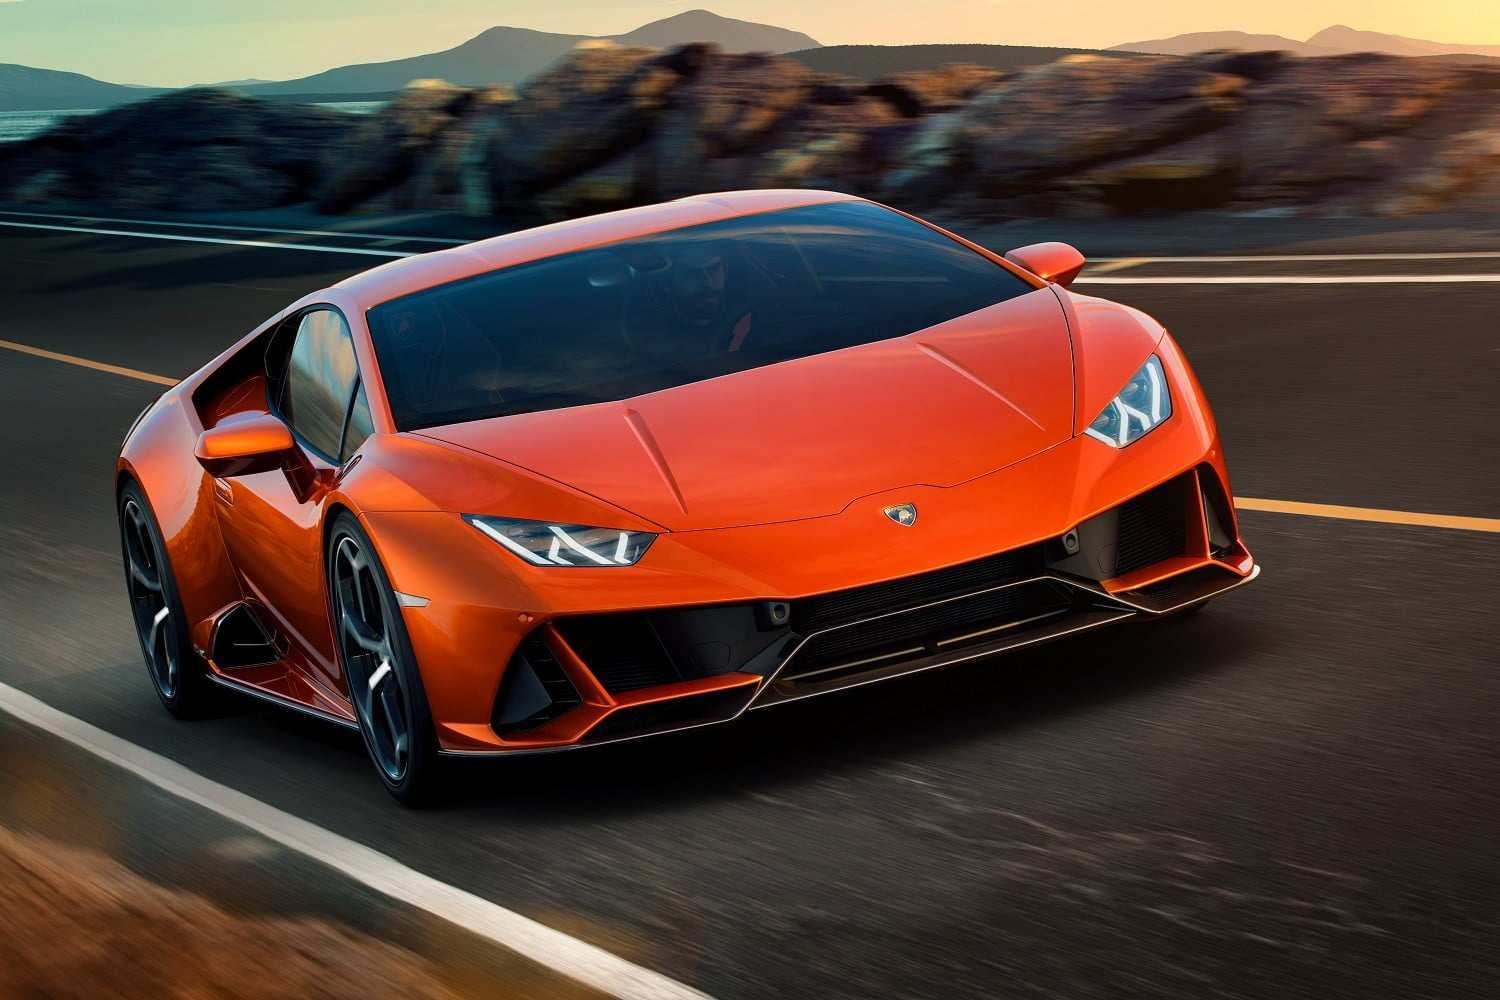 27 New 2020 Lamborghini Huracan Picture with 2020 Lamborghini Huracan